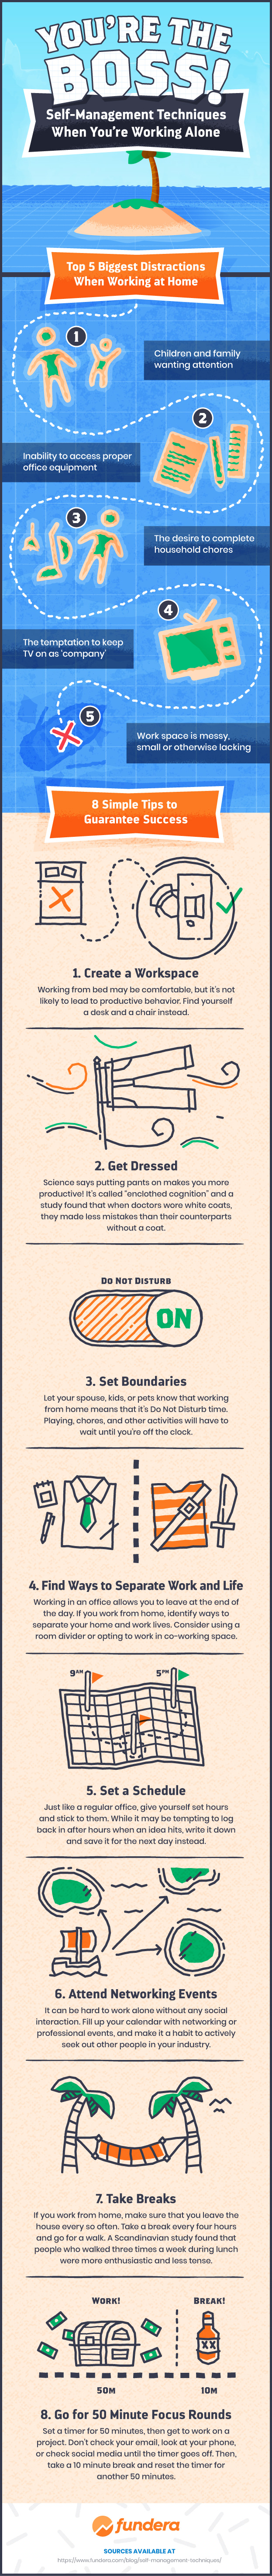 Working Out of Home? How to Set Boundaries and Stay Focused and Motivated - Infographic